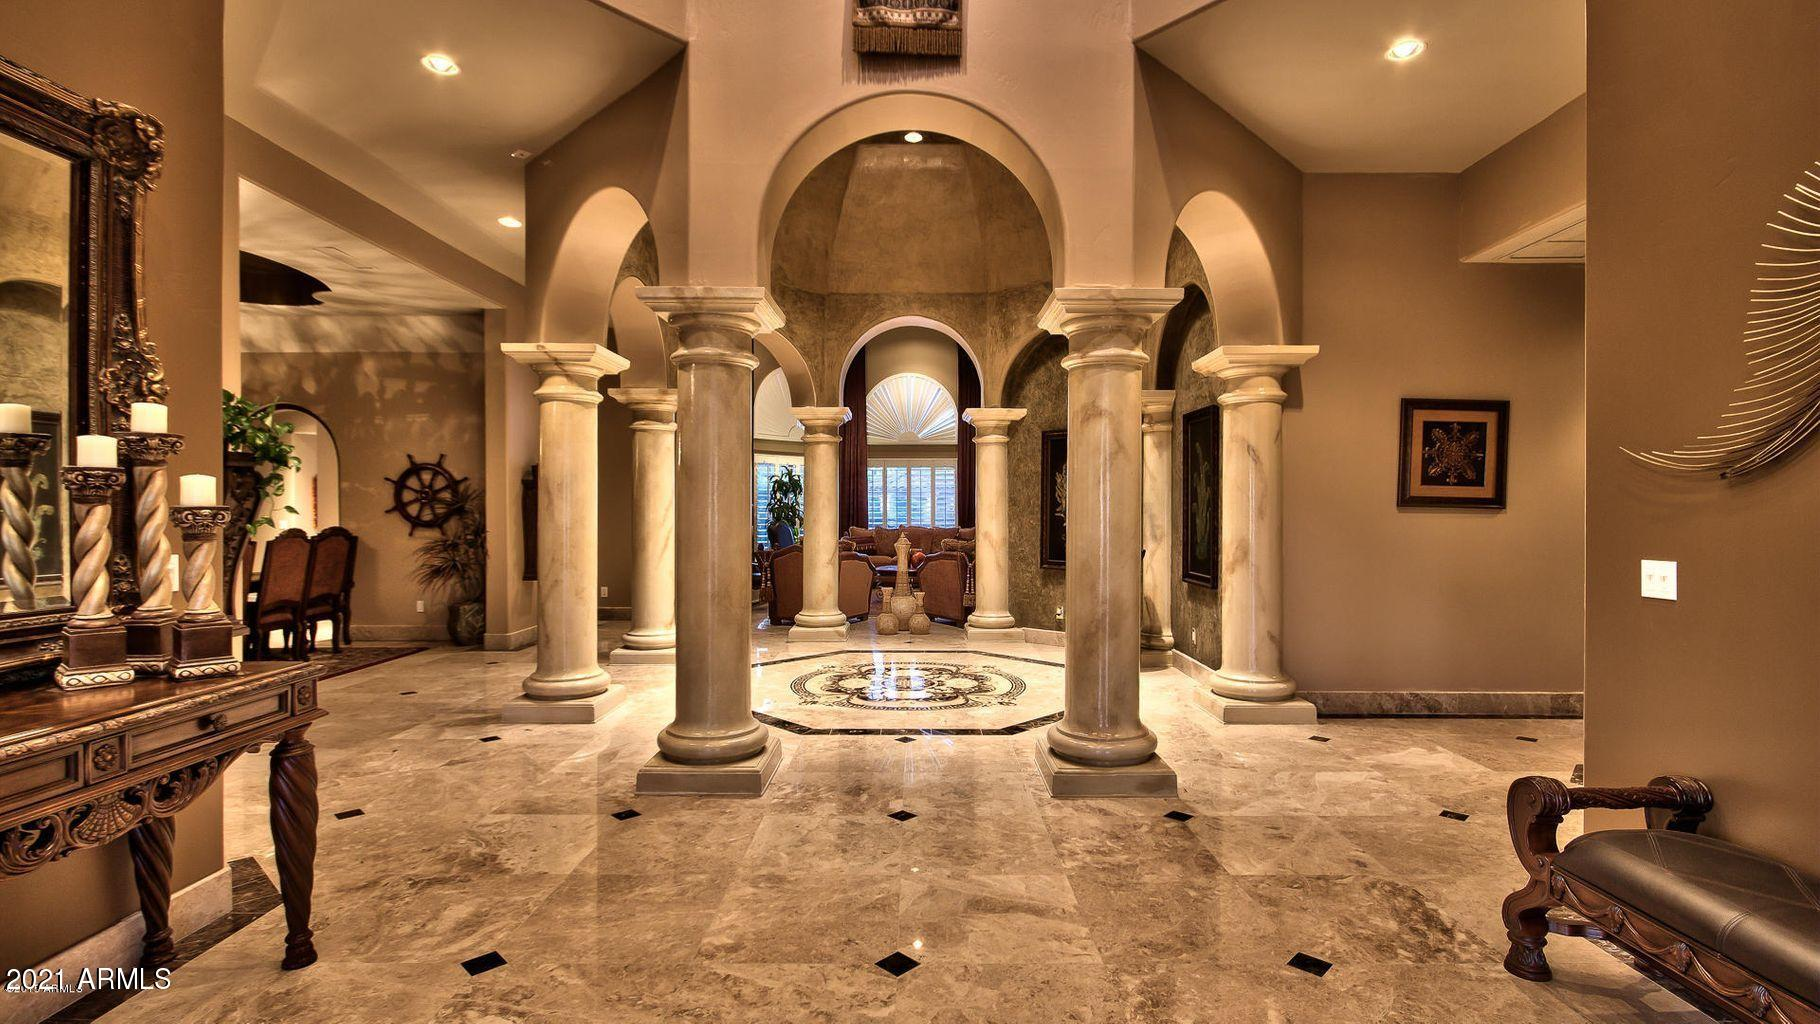 7505 70TH Street, Paradise Valley, Arizona 85253, 6 Bedrooms Bedrooms, ,6 BathroomsBathrooms,Residential,For Sale,70TH,6192842